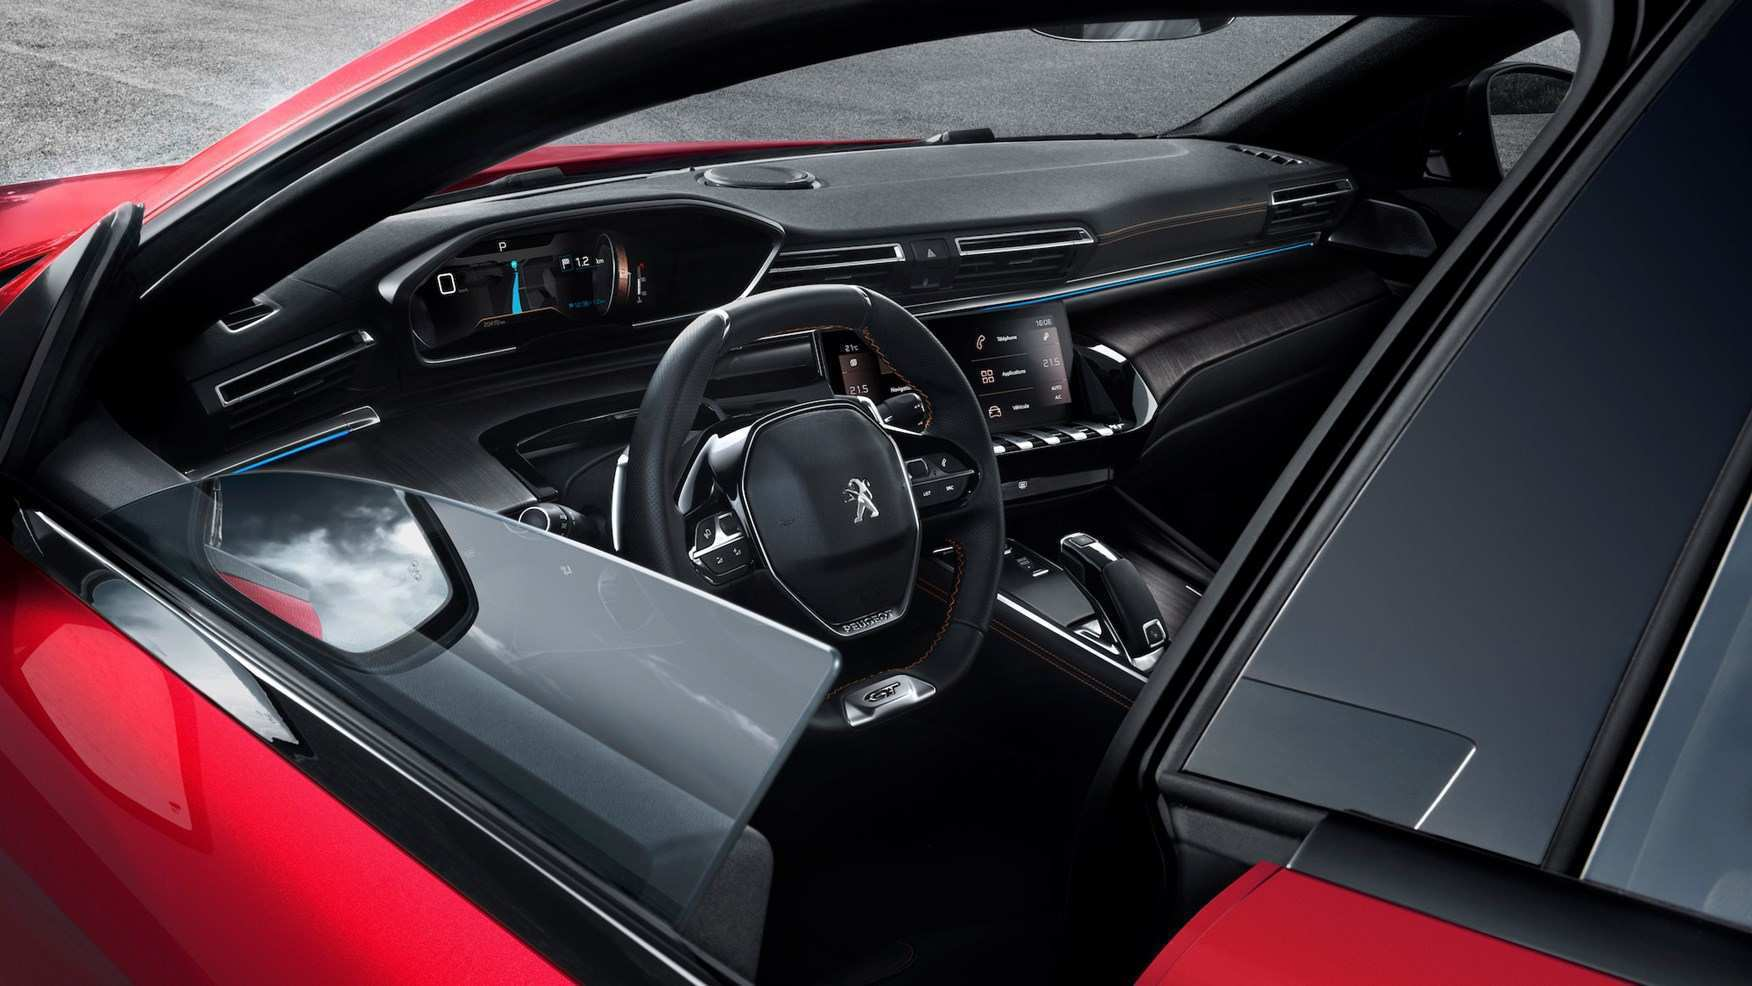 91 All New Motori 2020 Peugeot Interior